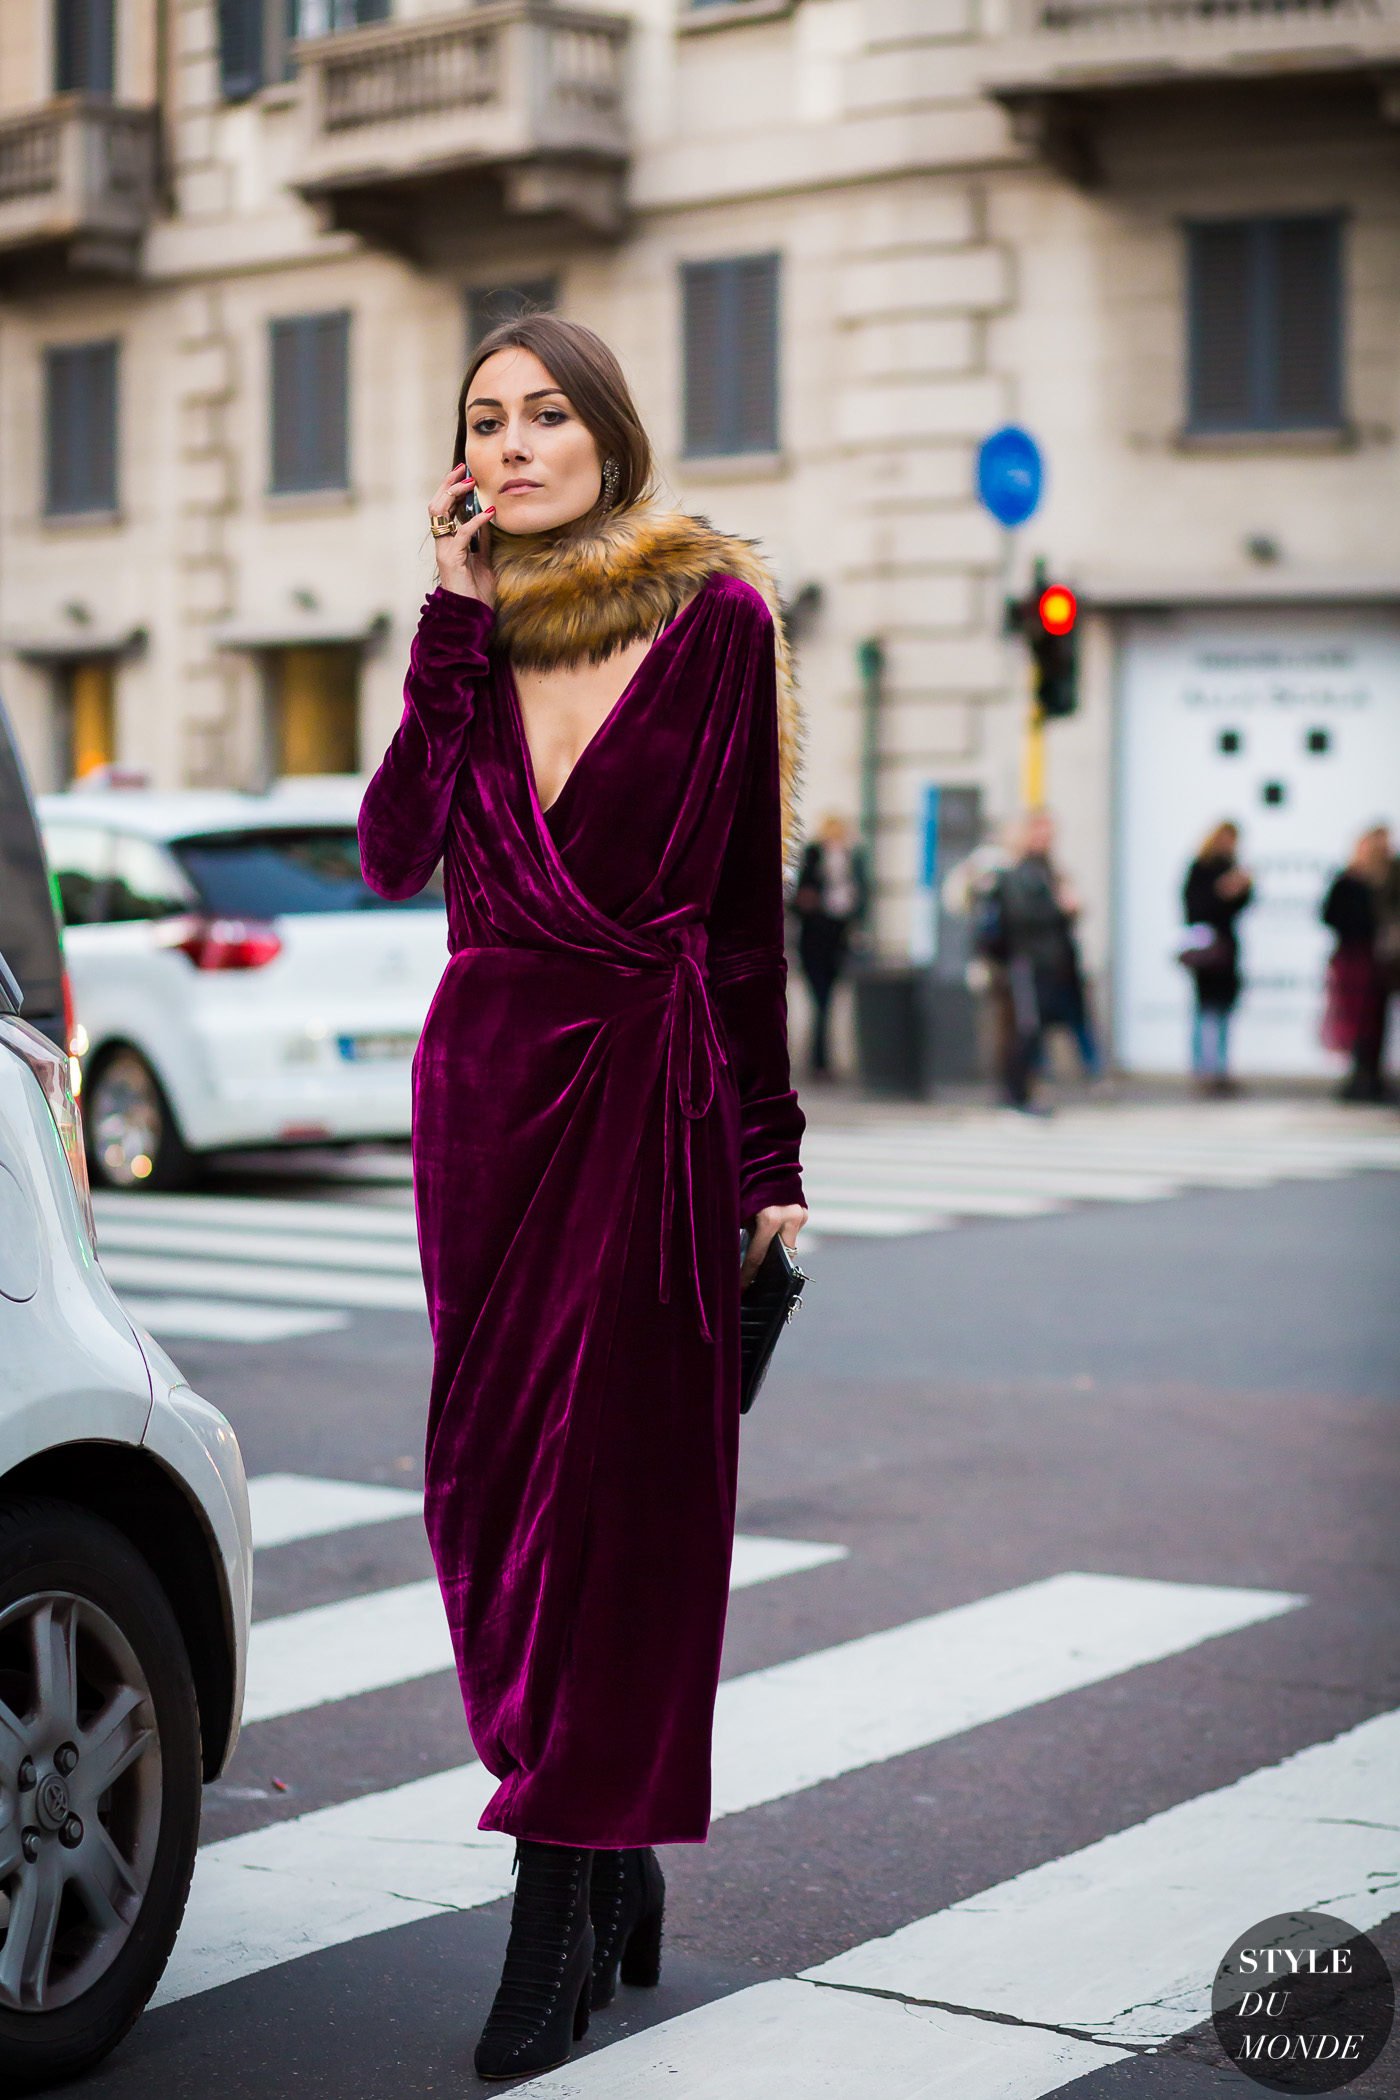 Milan Fashion Week FW 2016 Street Style: Giorgia Tordini and Gilda Ambrosio | Style Du Monde - It Girl Holiday Outfit Inspiration